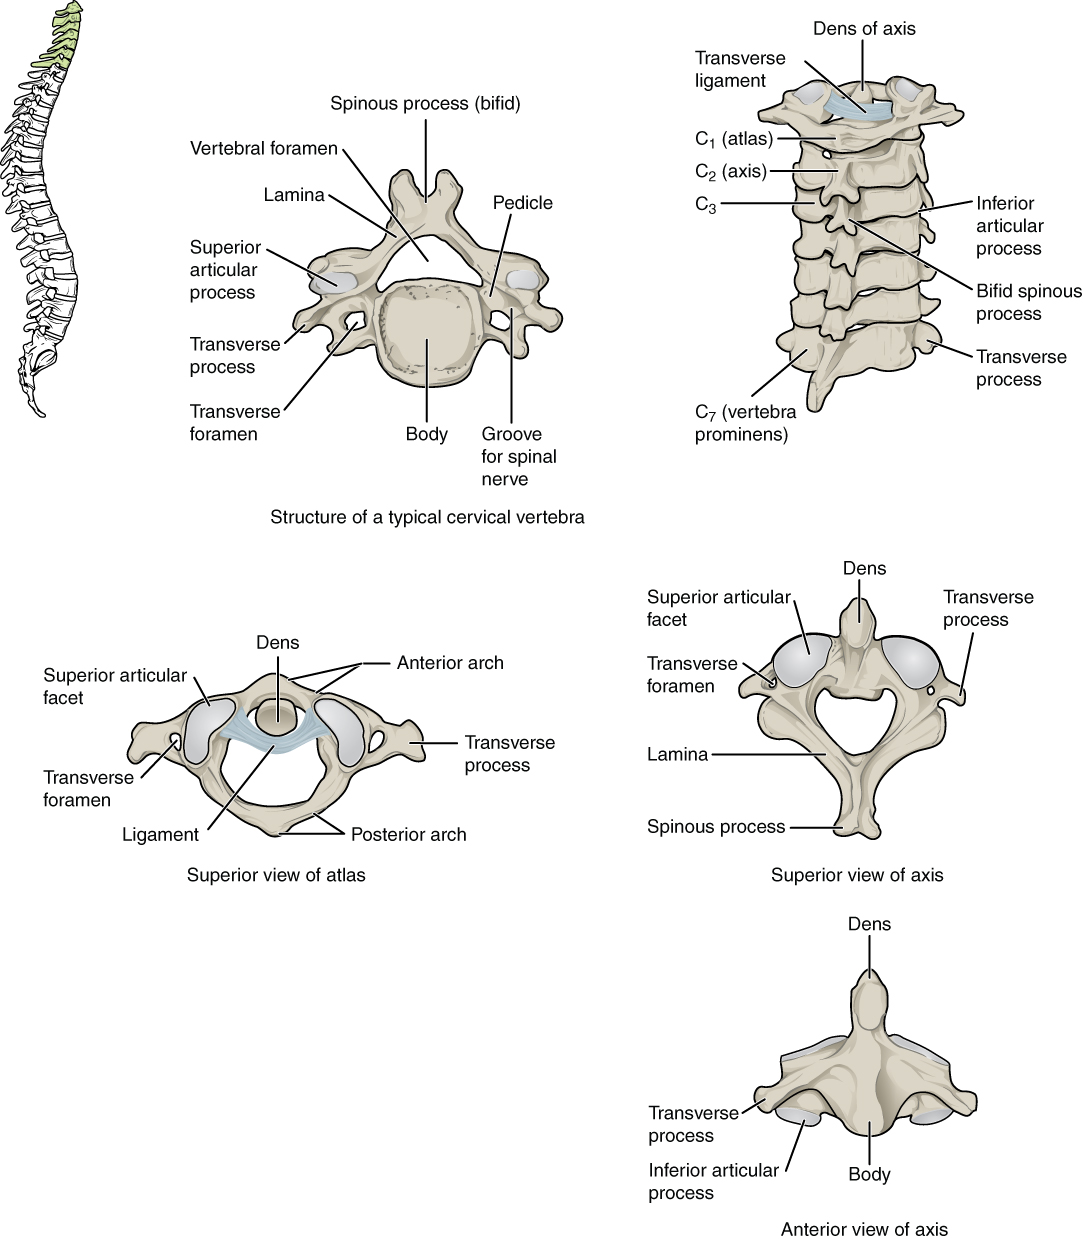 This figure shows the structure of the cervical vertebrae. The left panel shows the location of the cervical vertebrae in green along the vertebral column. The middle panel shows the structure of a typical cervical vertebra and the right panel shows the superior and anterior view of the axis.